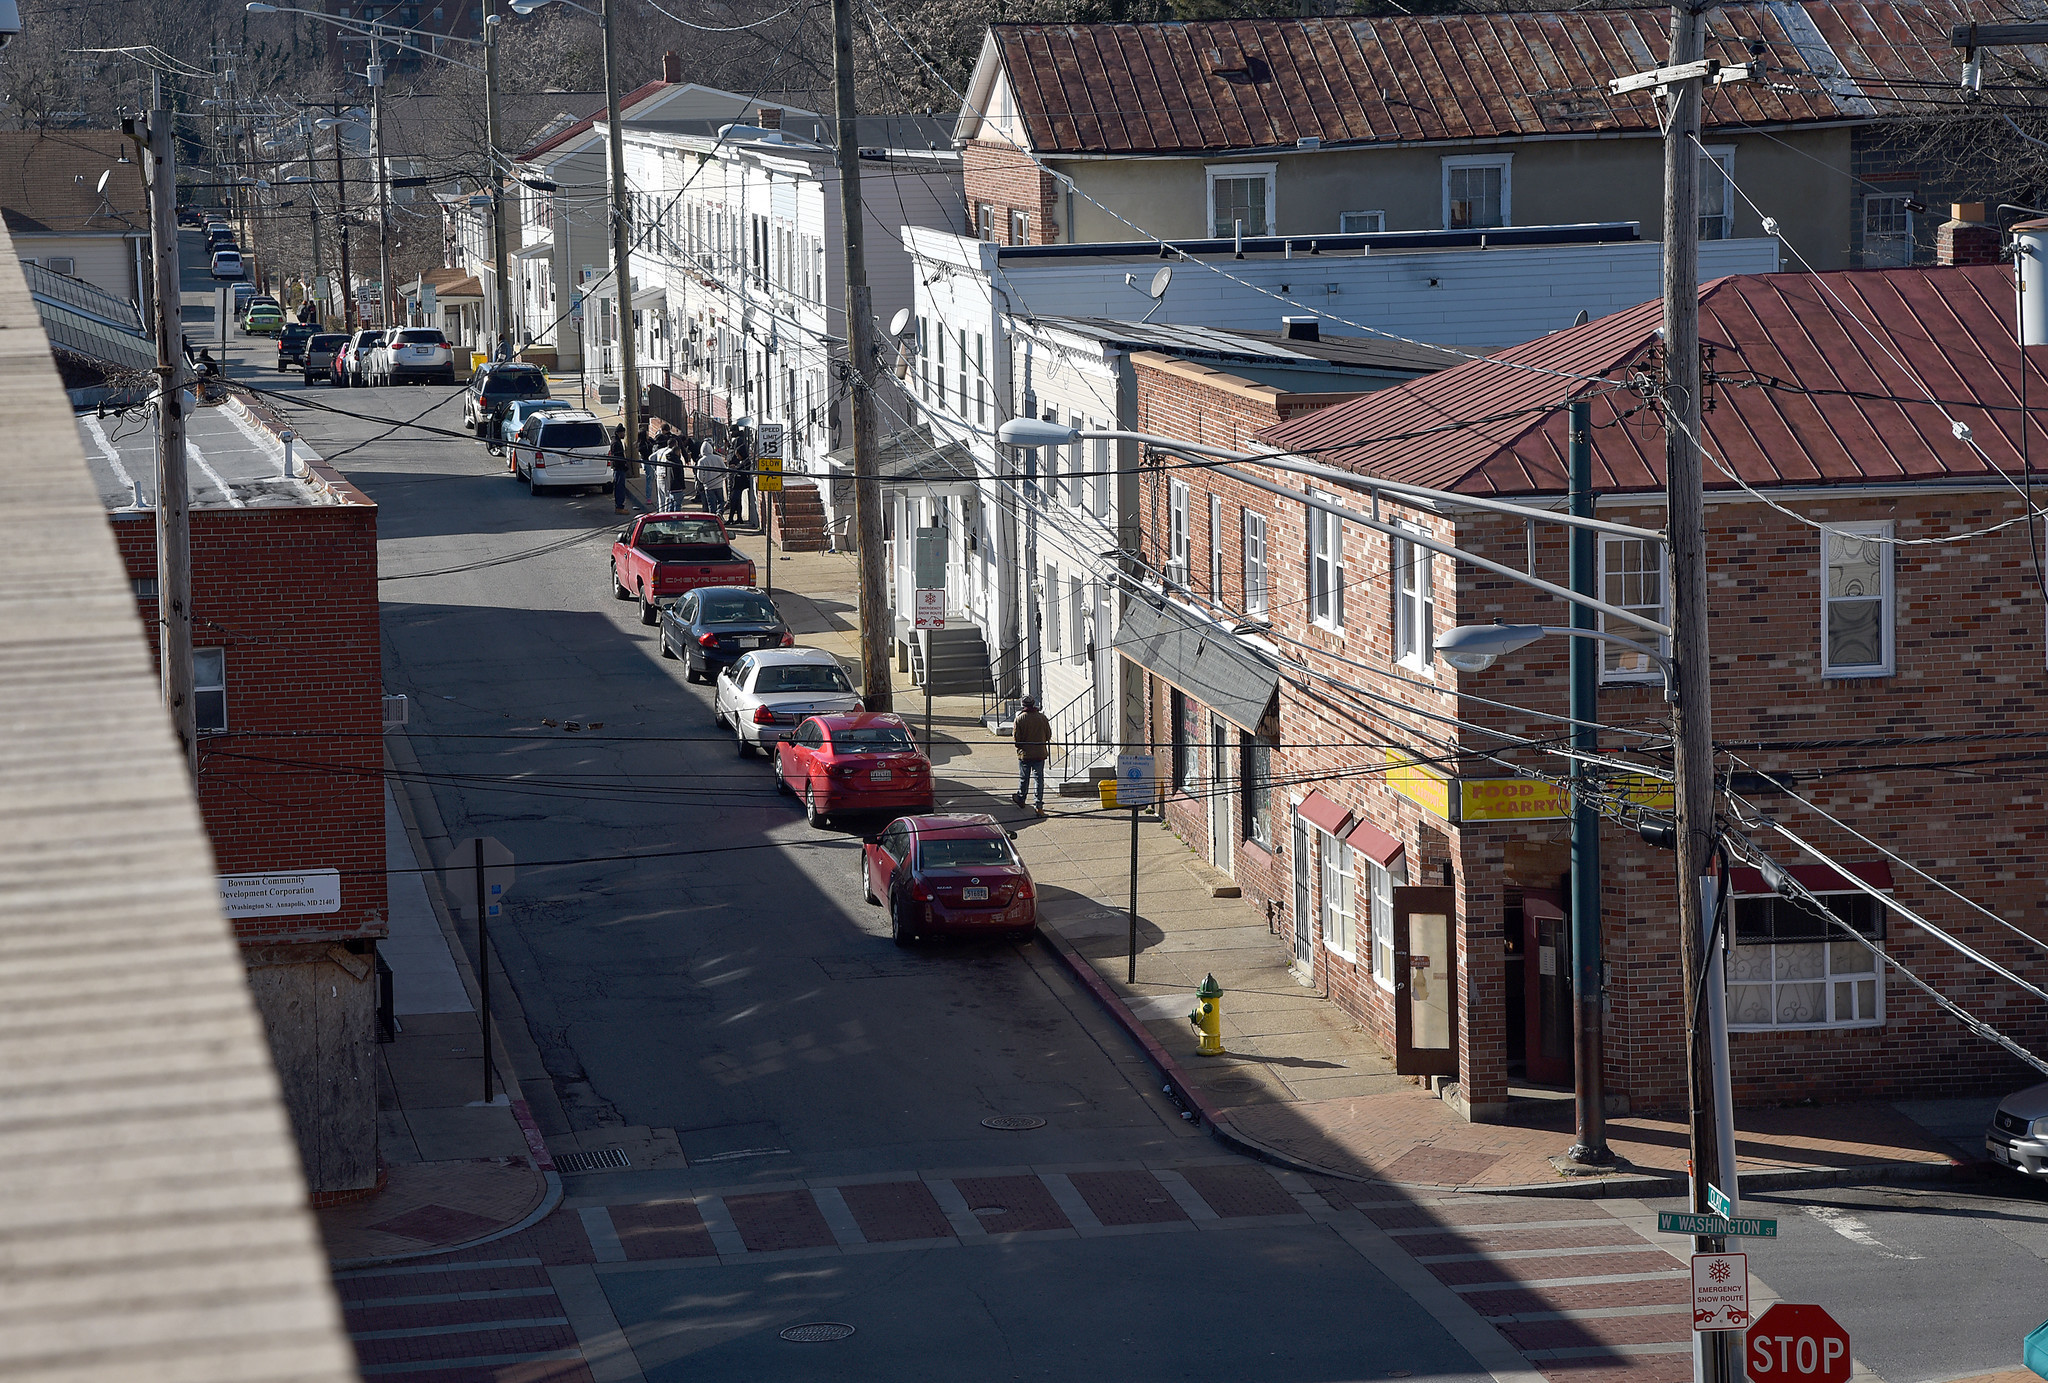 Annapolis residents worry violence stems from community rivalries